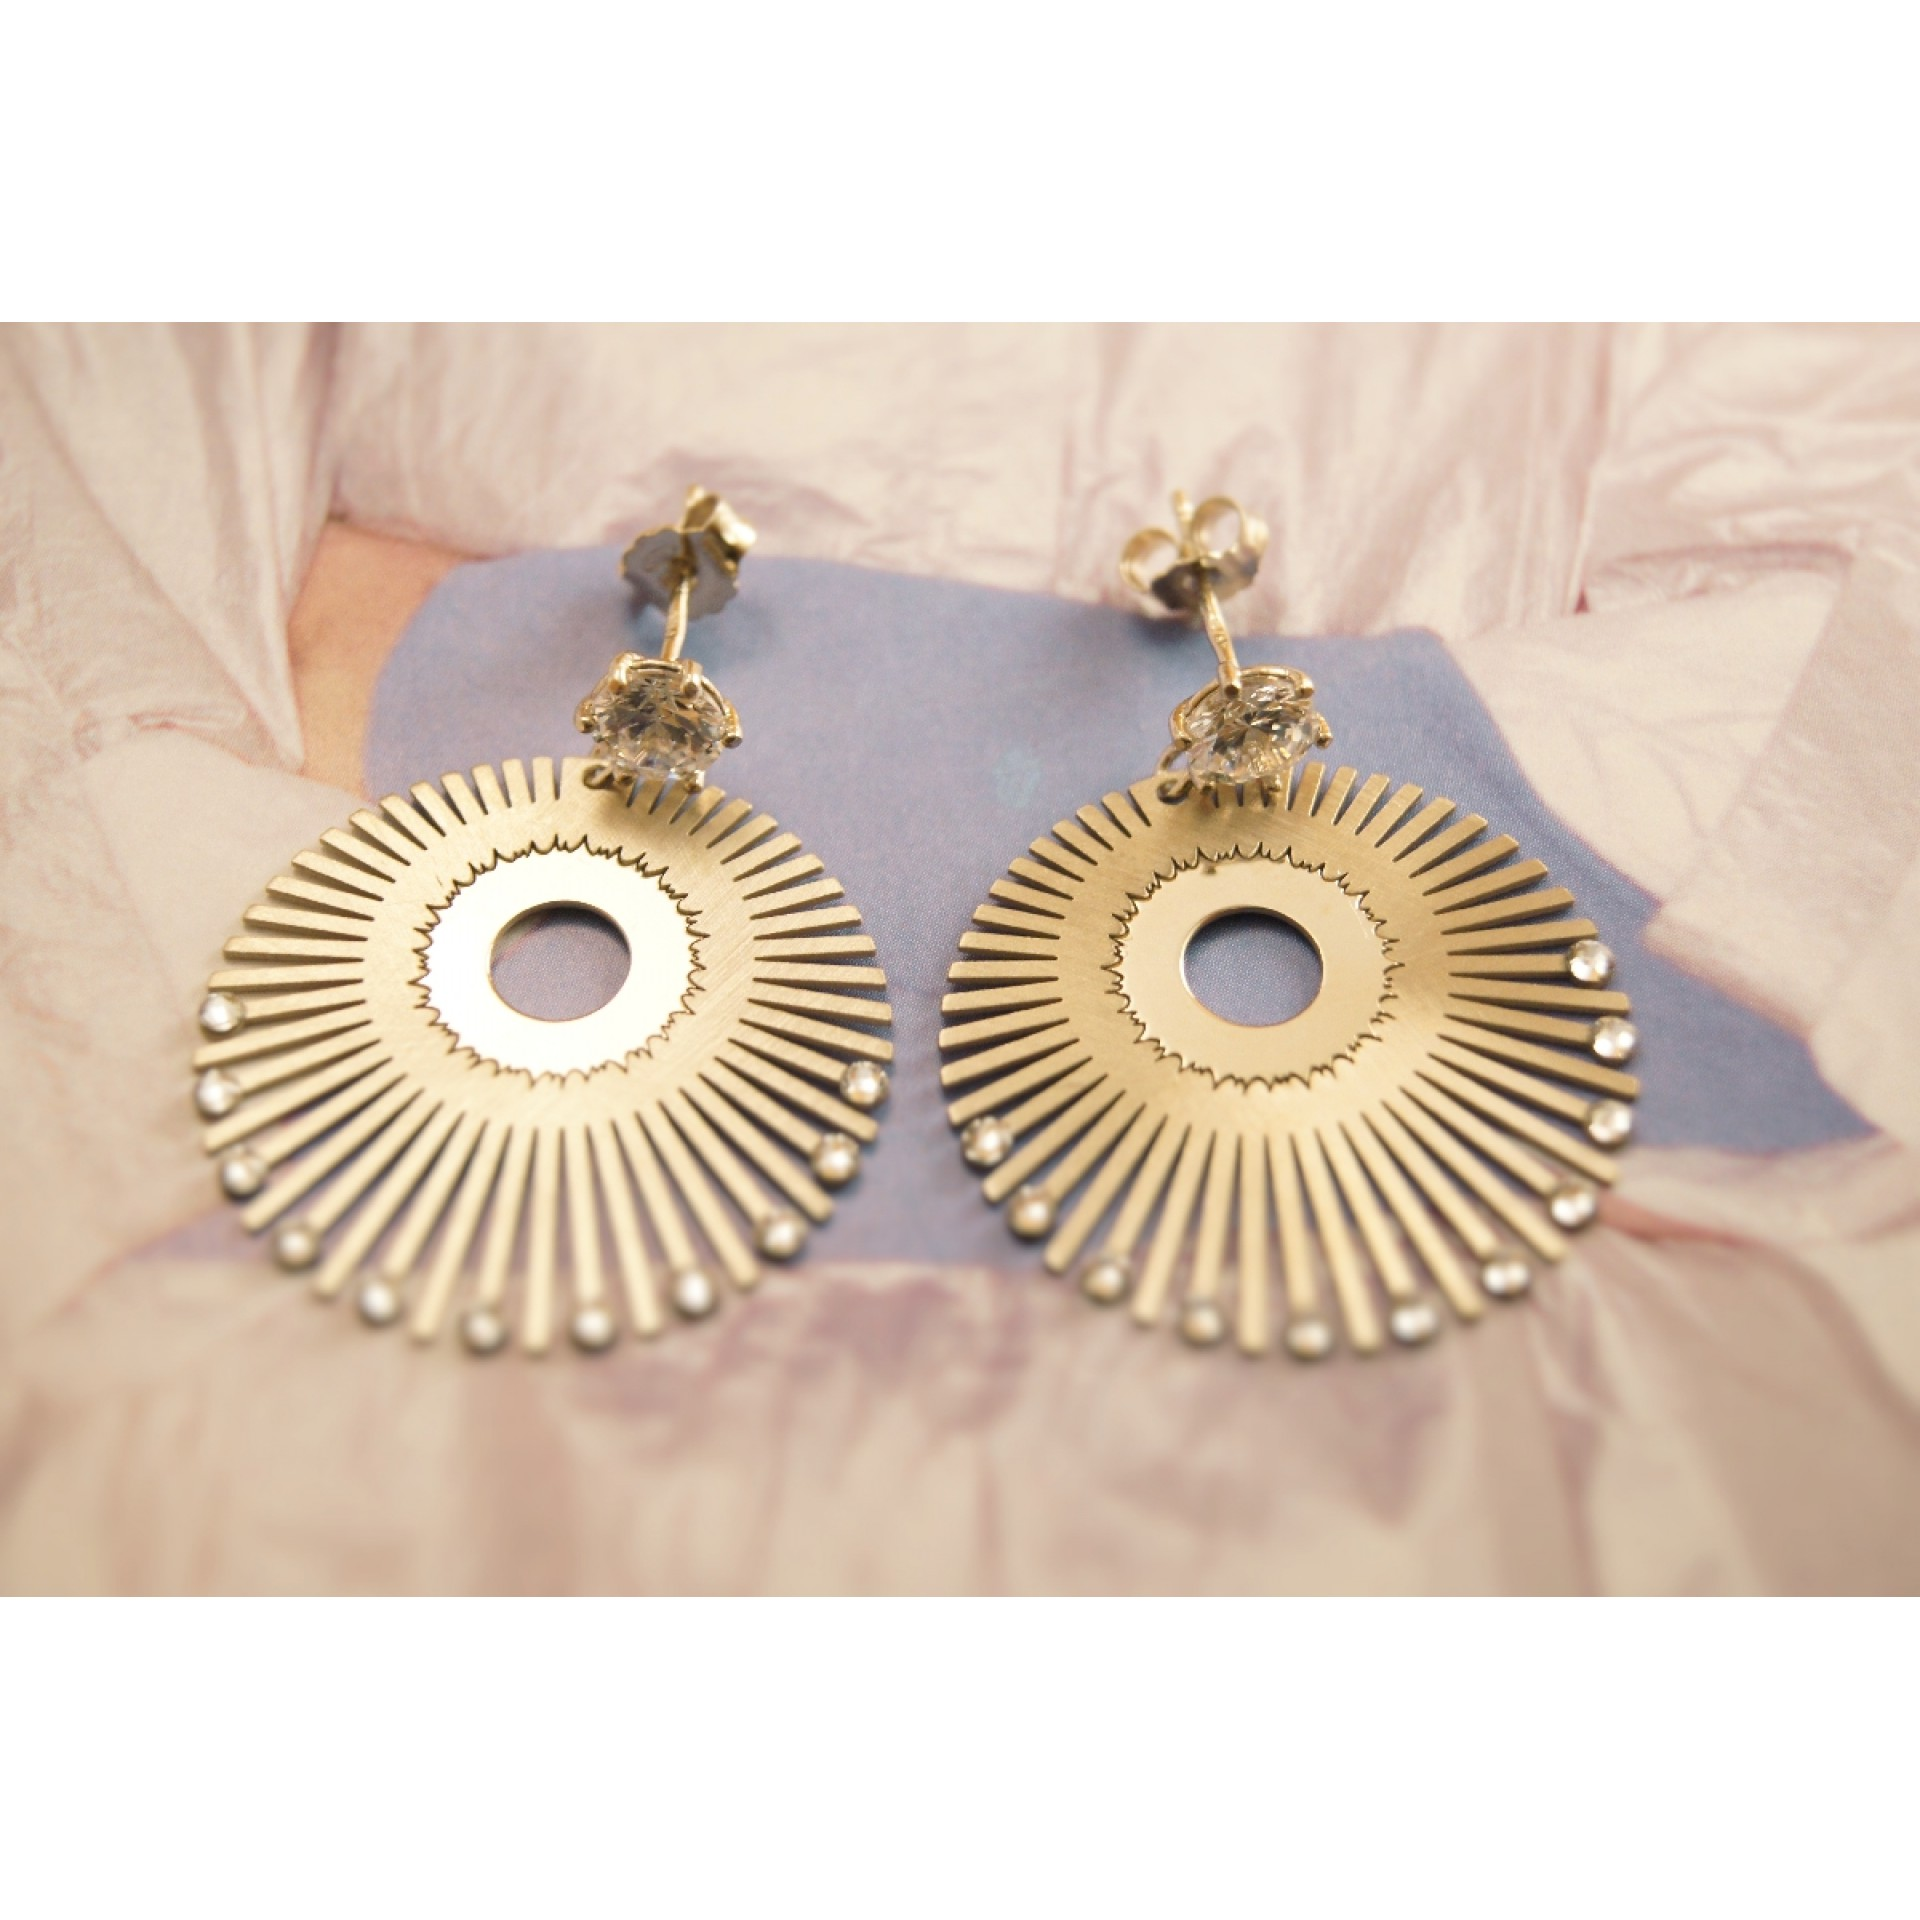 The Radiance in Golden Satin and Crystals silver earrings